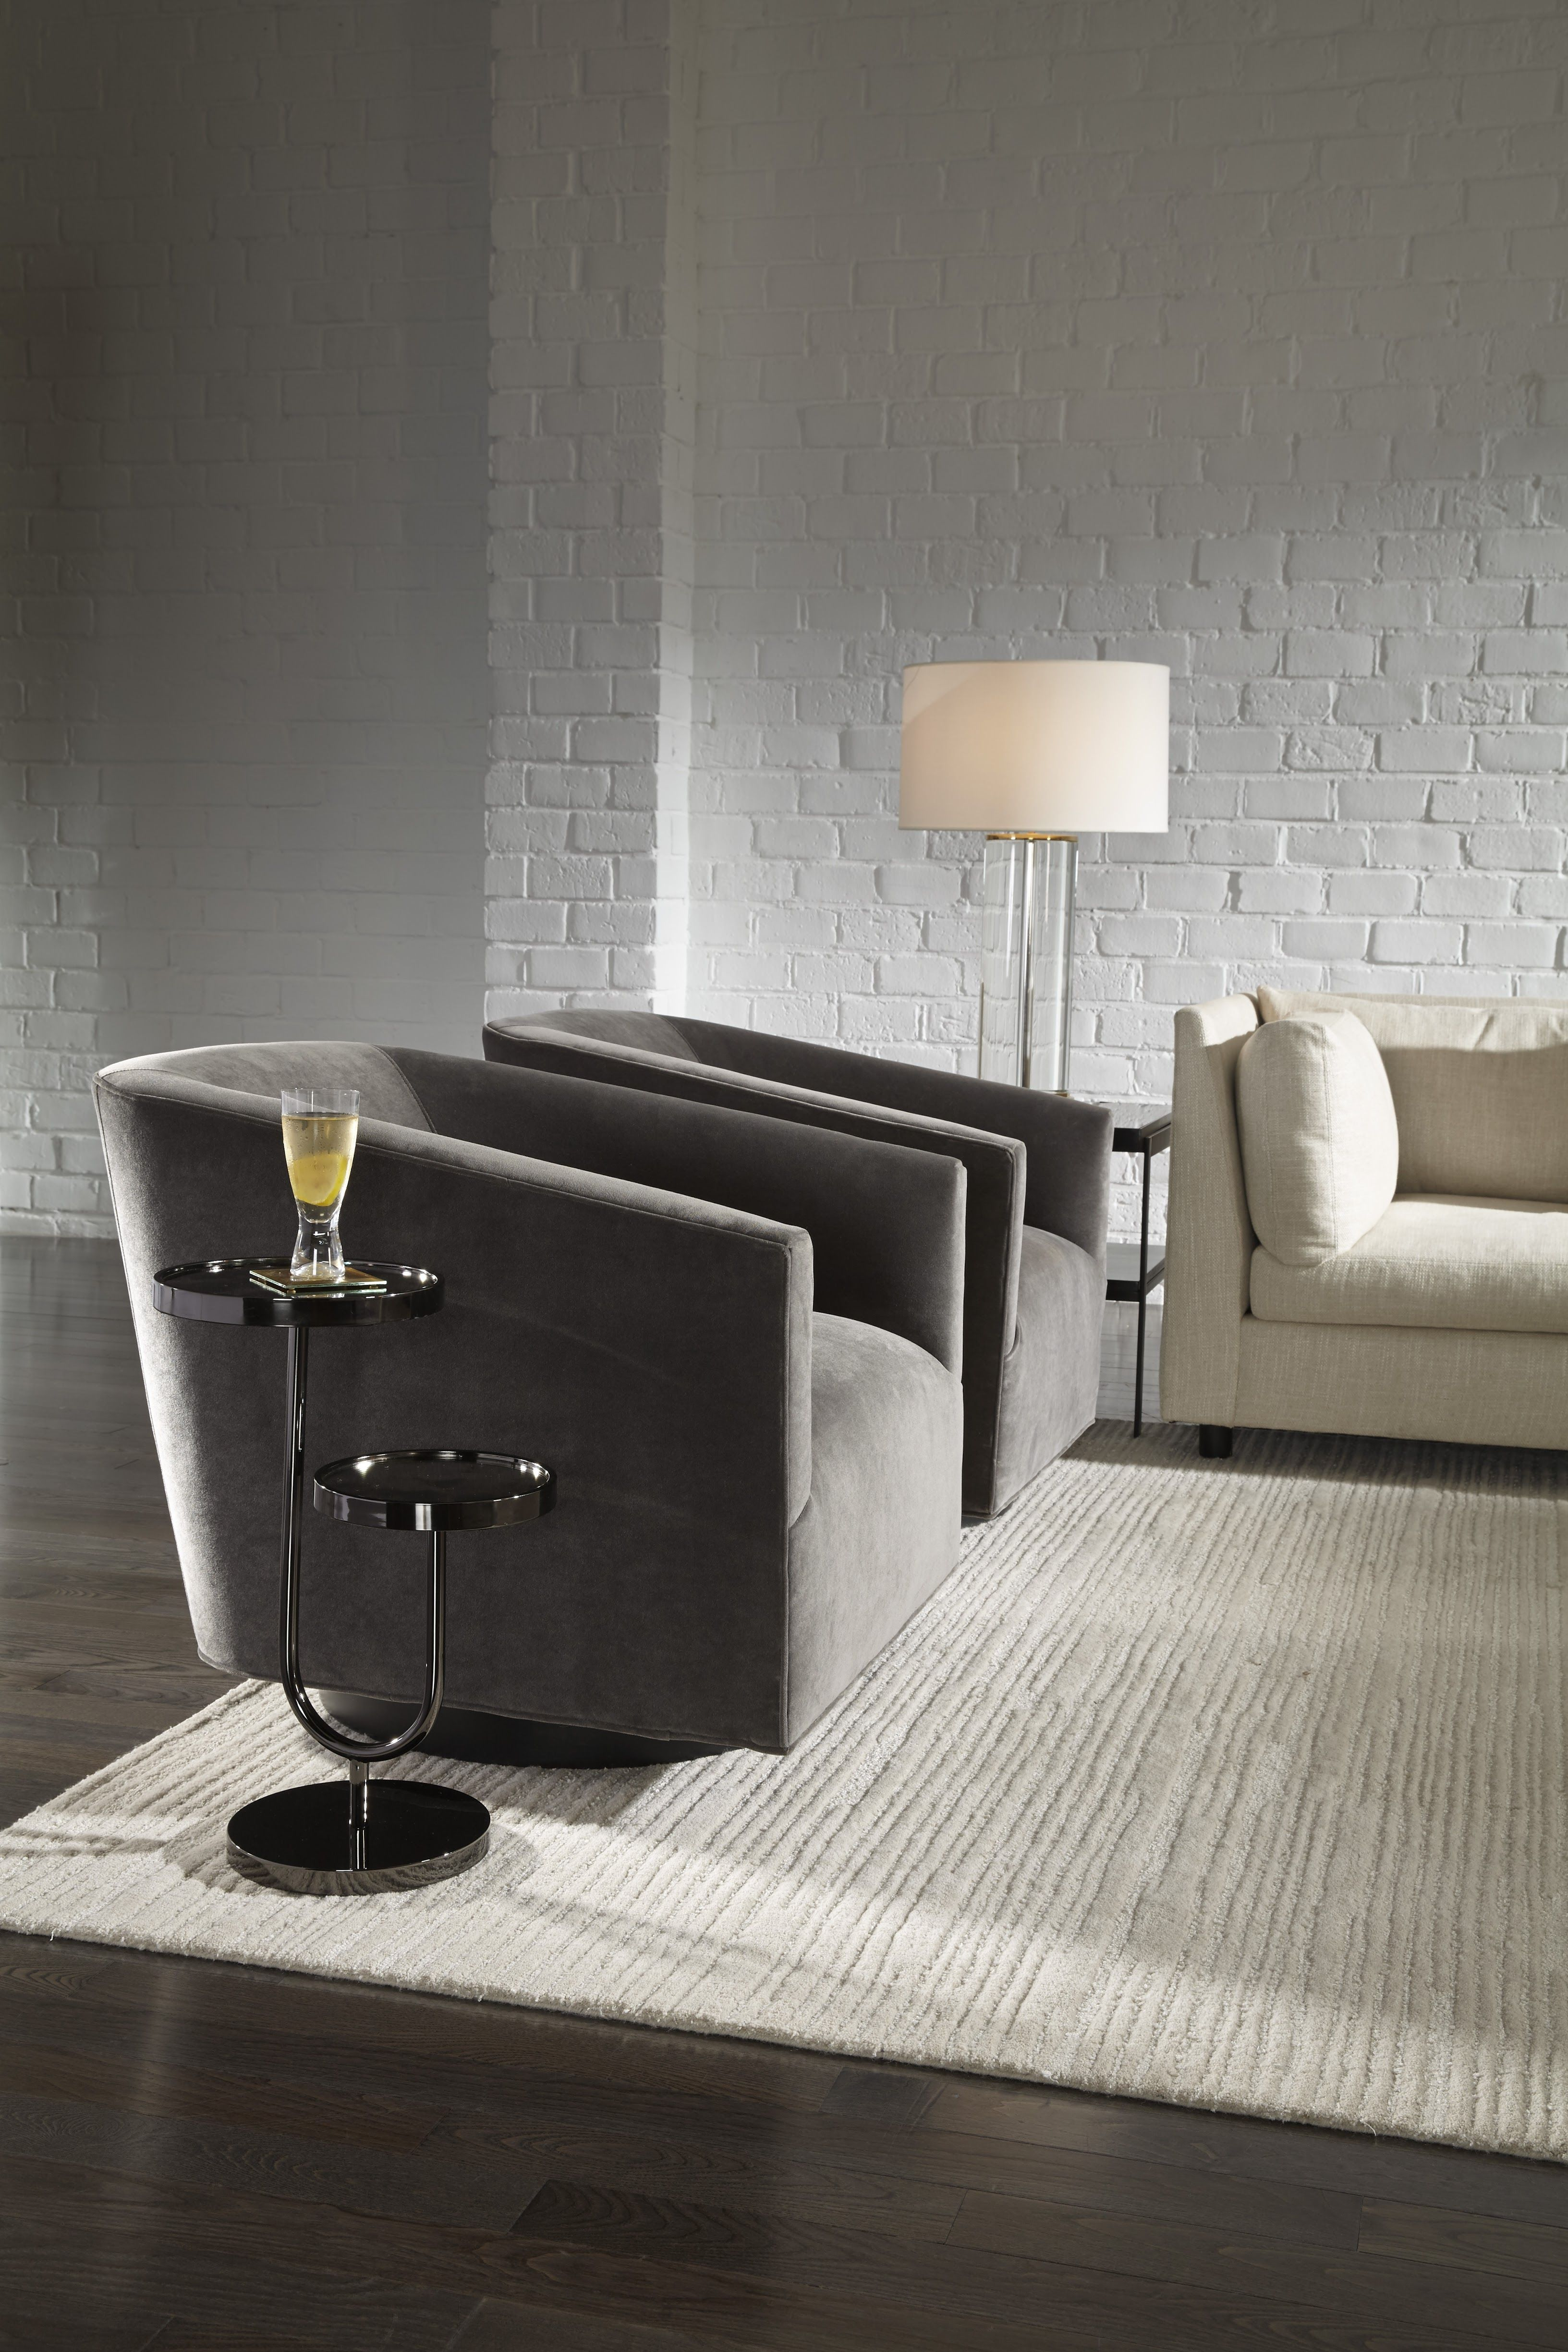 Charmant MG+BW: Ringo Pull Up Side Table   This Sculptural Bi Level